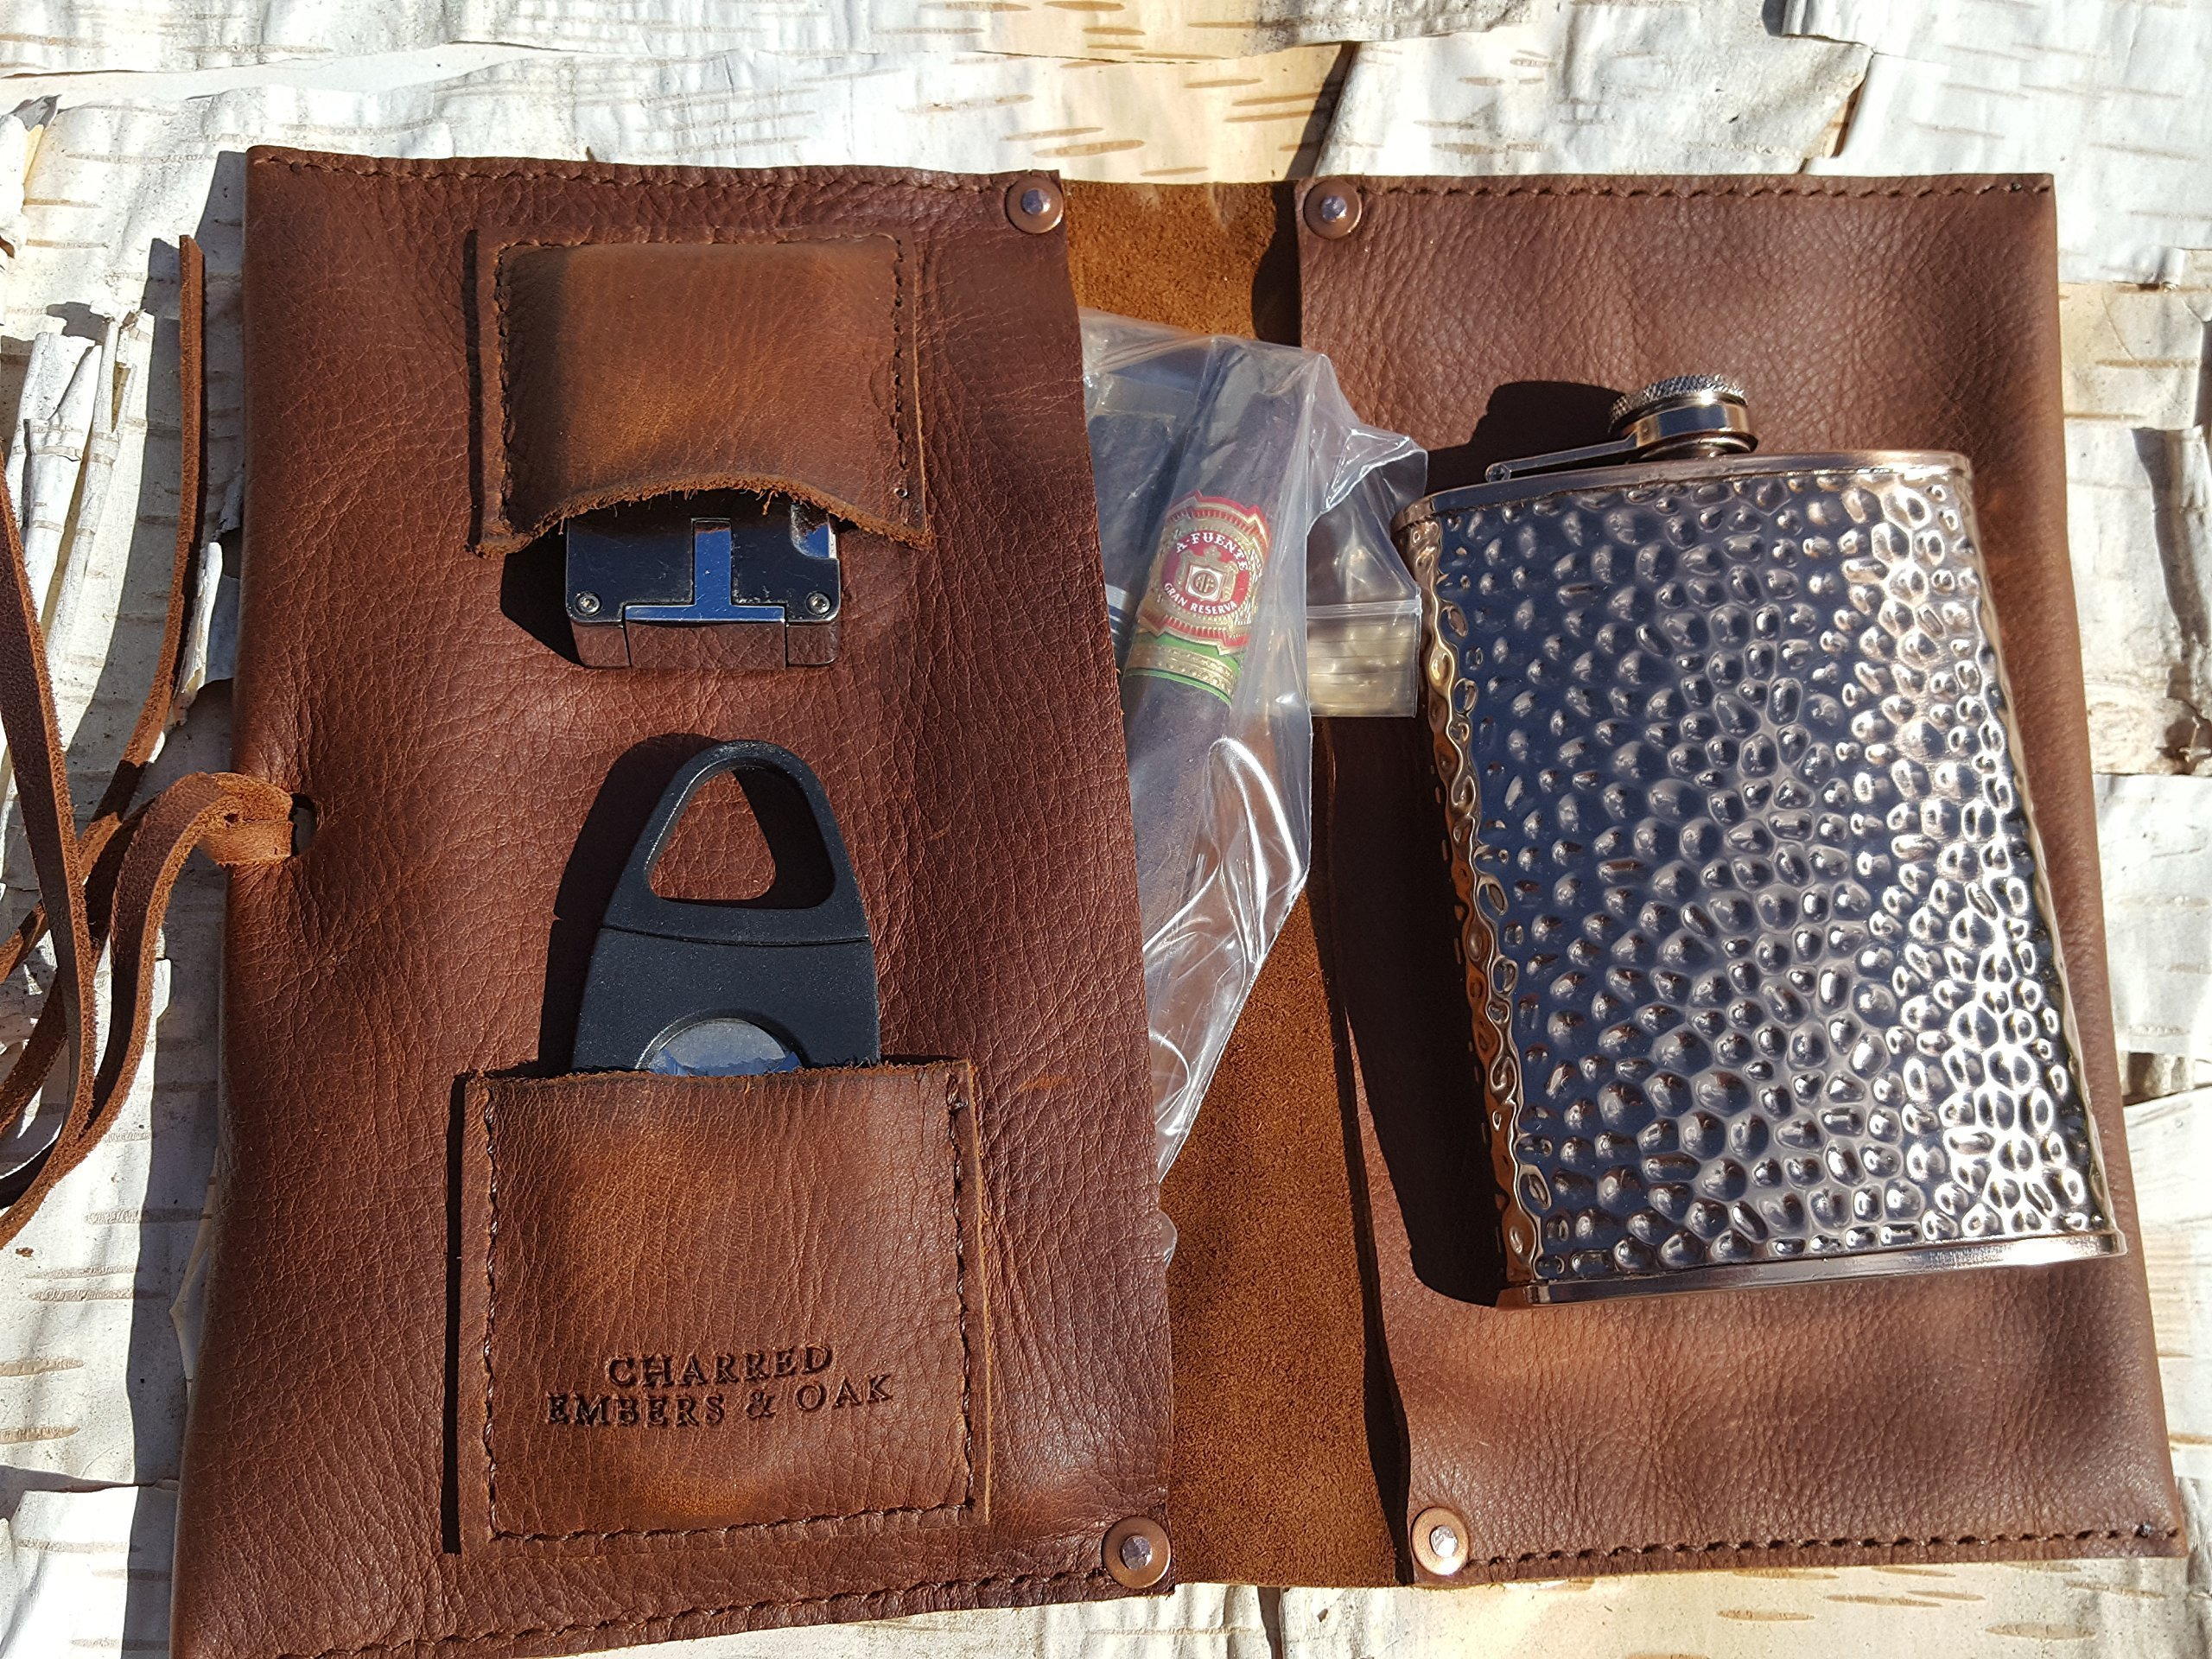 Large Leather Cigar Case w/ Hammered Copper Flask by Charred Embers & Oak